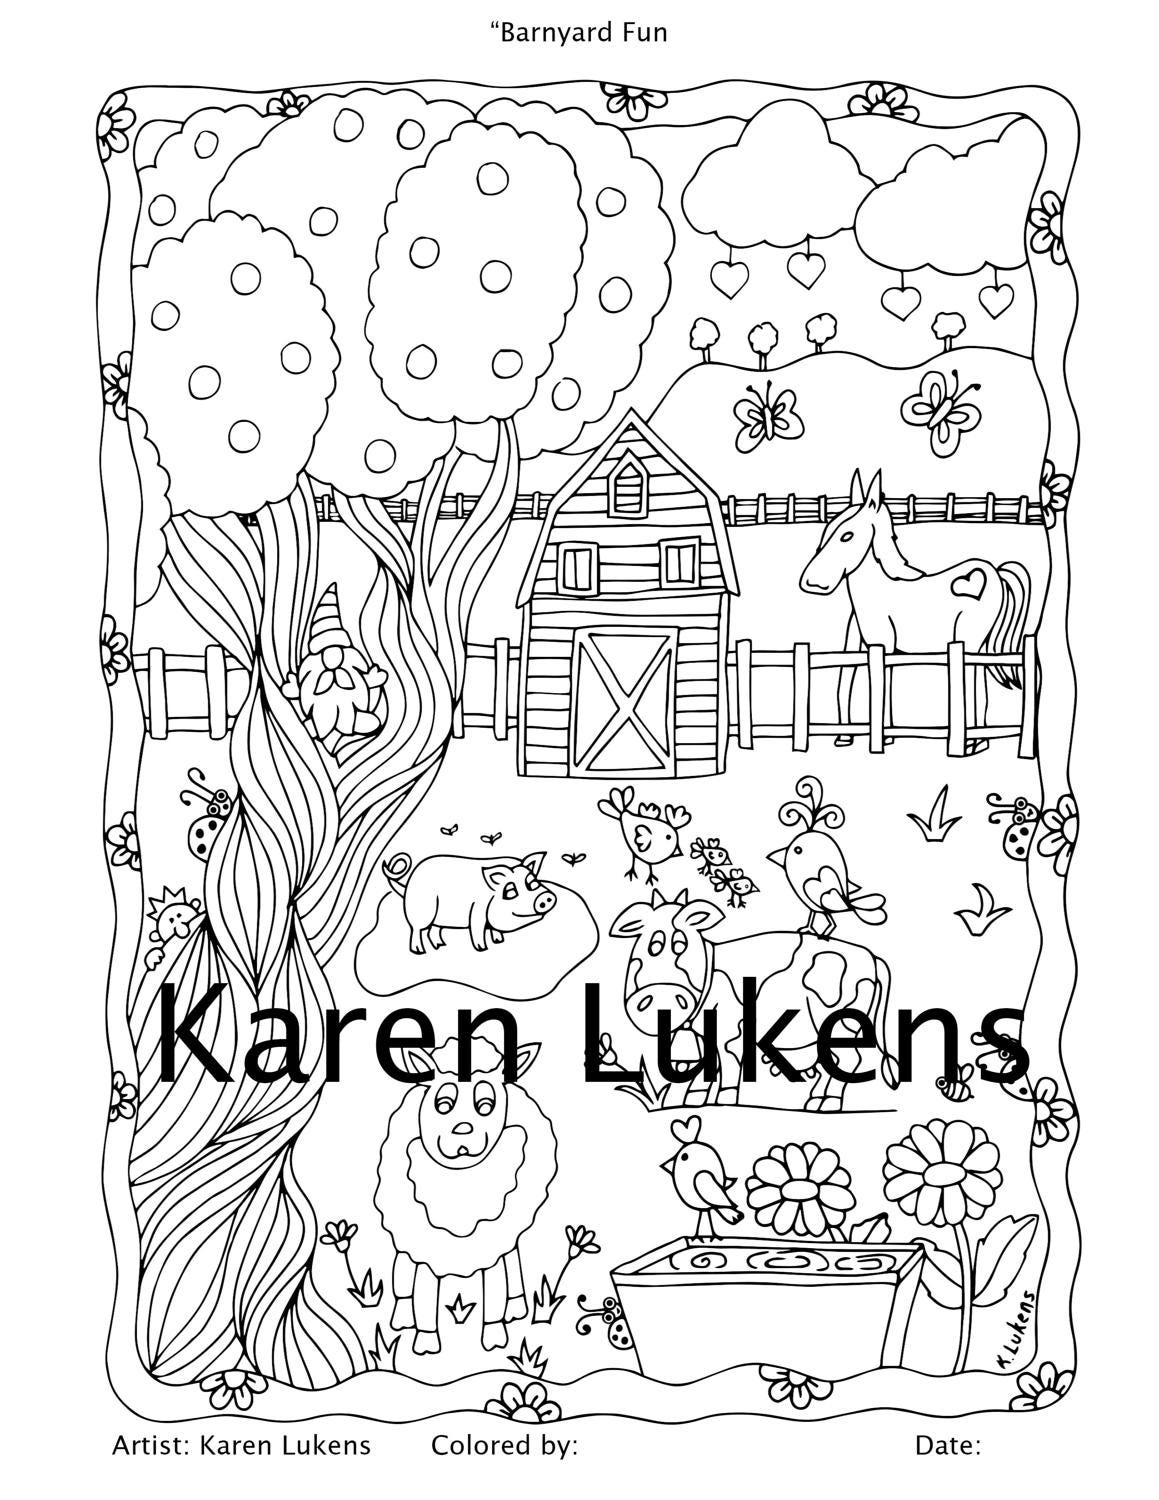 Coloring book download zip - Coloring Book Download Zip 36